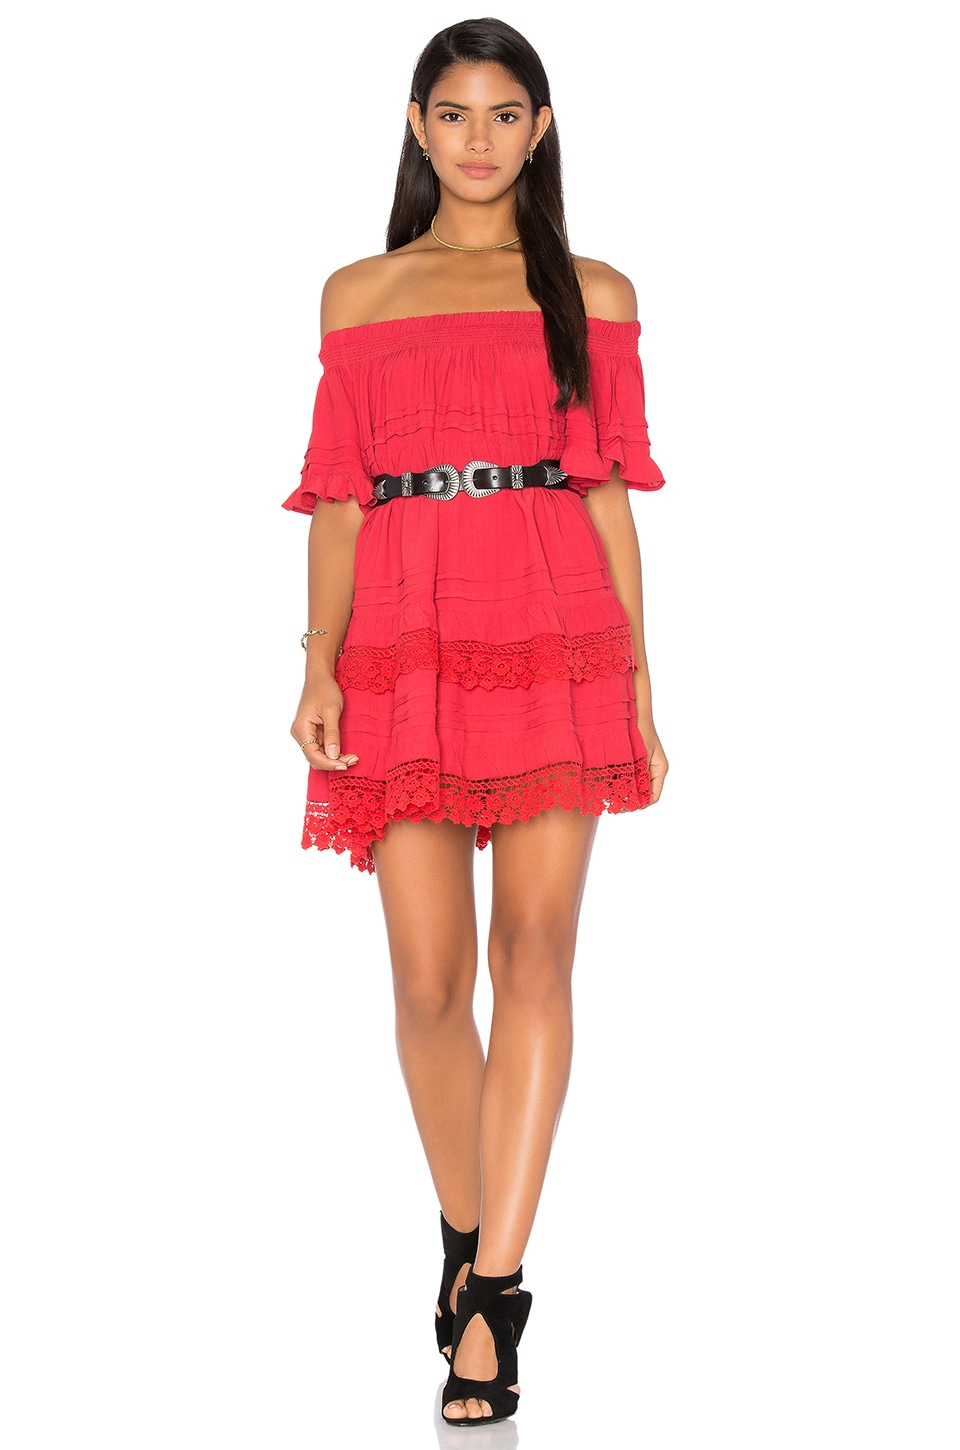 Tessora Ruffle Off the Shoulder Dress in Red